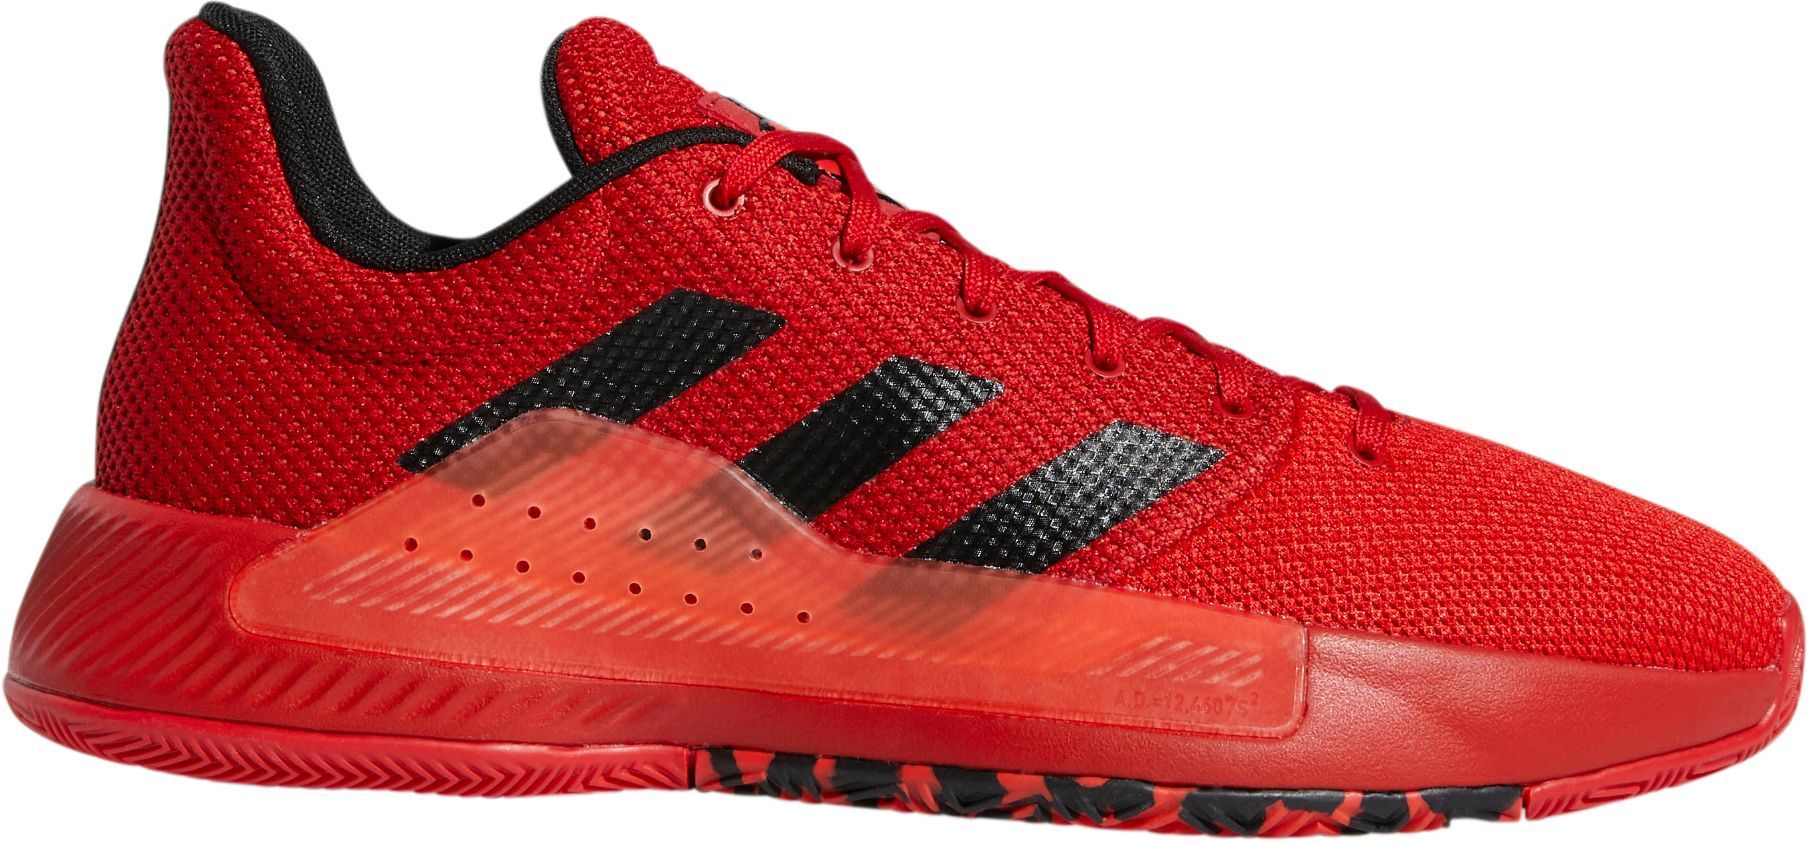 adidas Men\u0027s Pro Bounce Madness Low Basketball Shoes in 2019